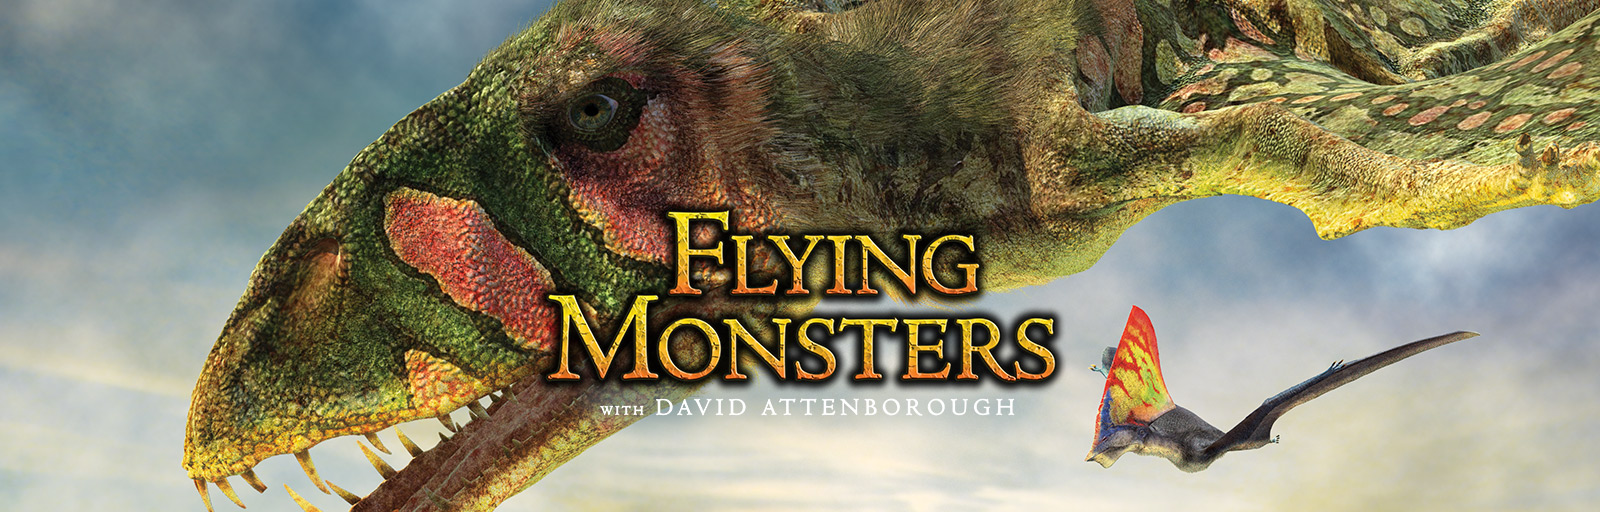 flyingmonsters-webslider